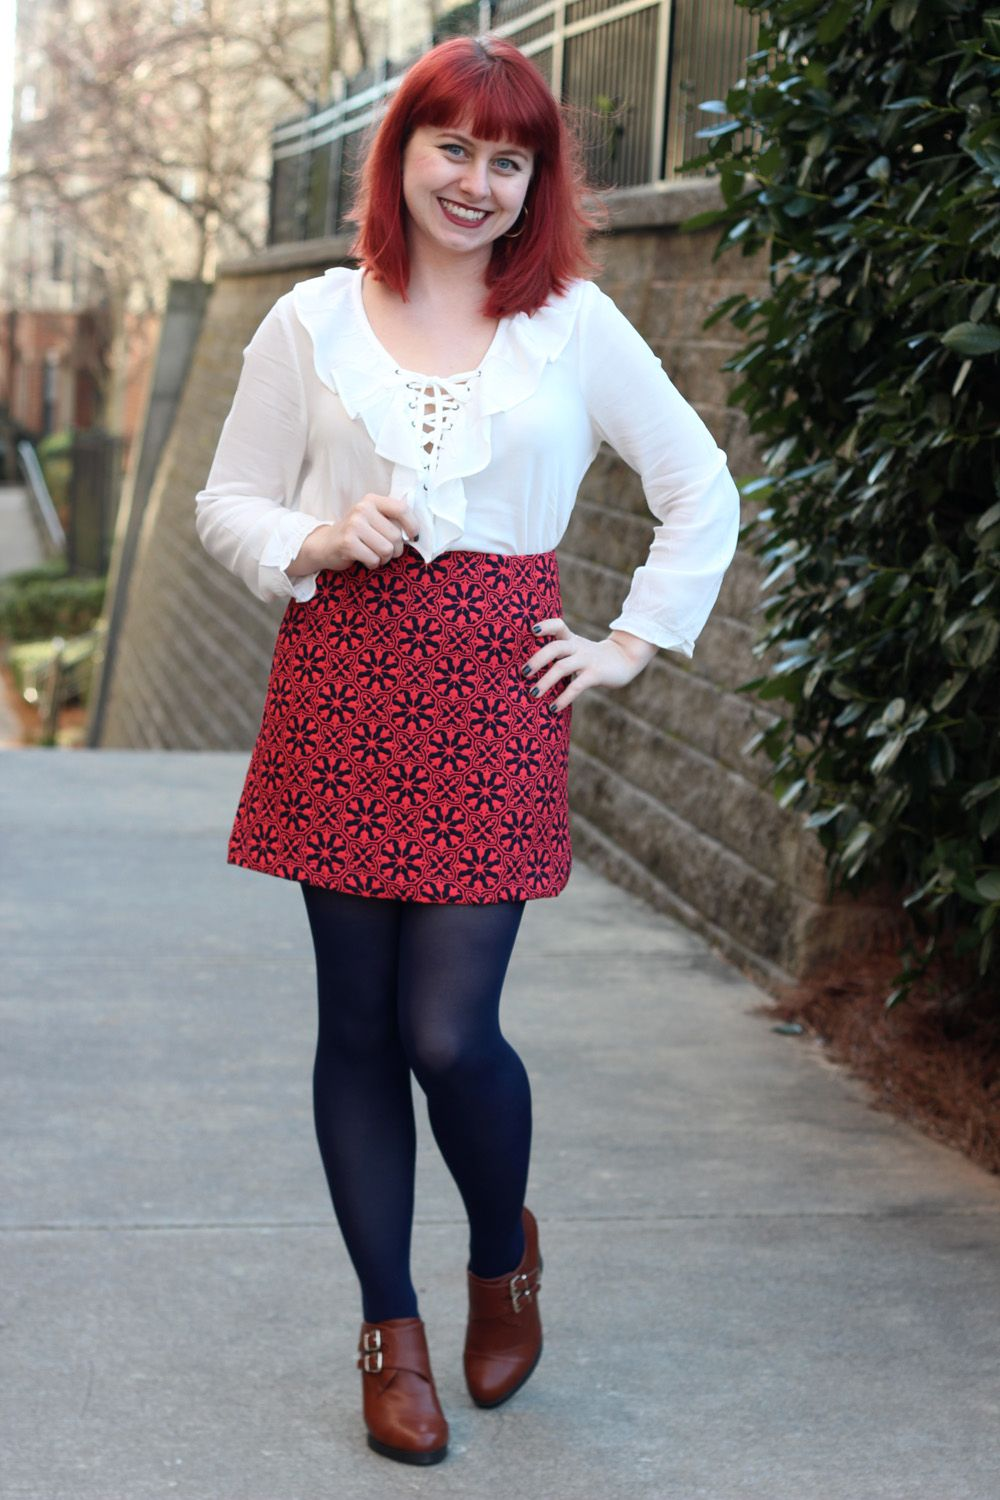 a5c83e005a Retro Lace Up White Blouse with a Geometric Floral Mini Skirt, Navy Blue  Tights, and Tall Tawny Brown Ankle Boots